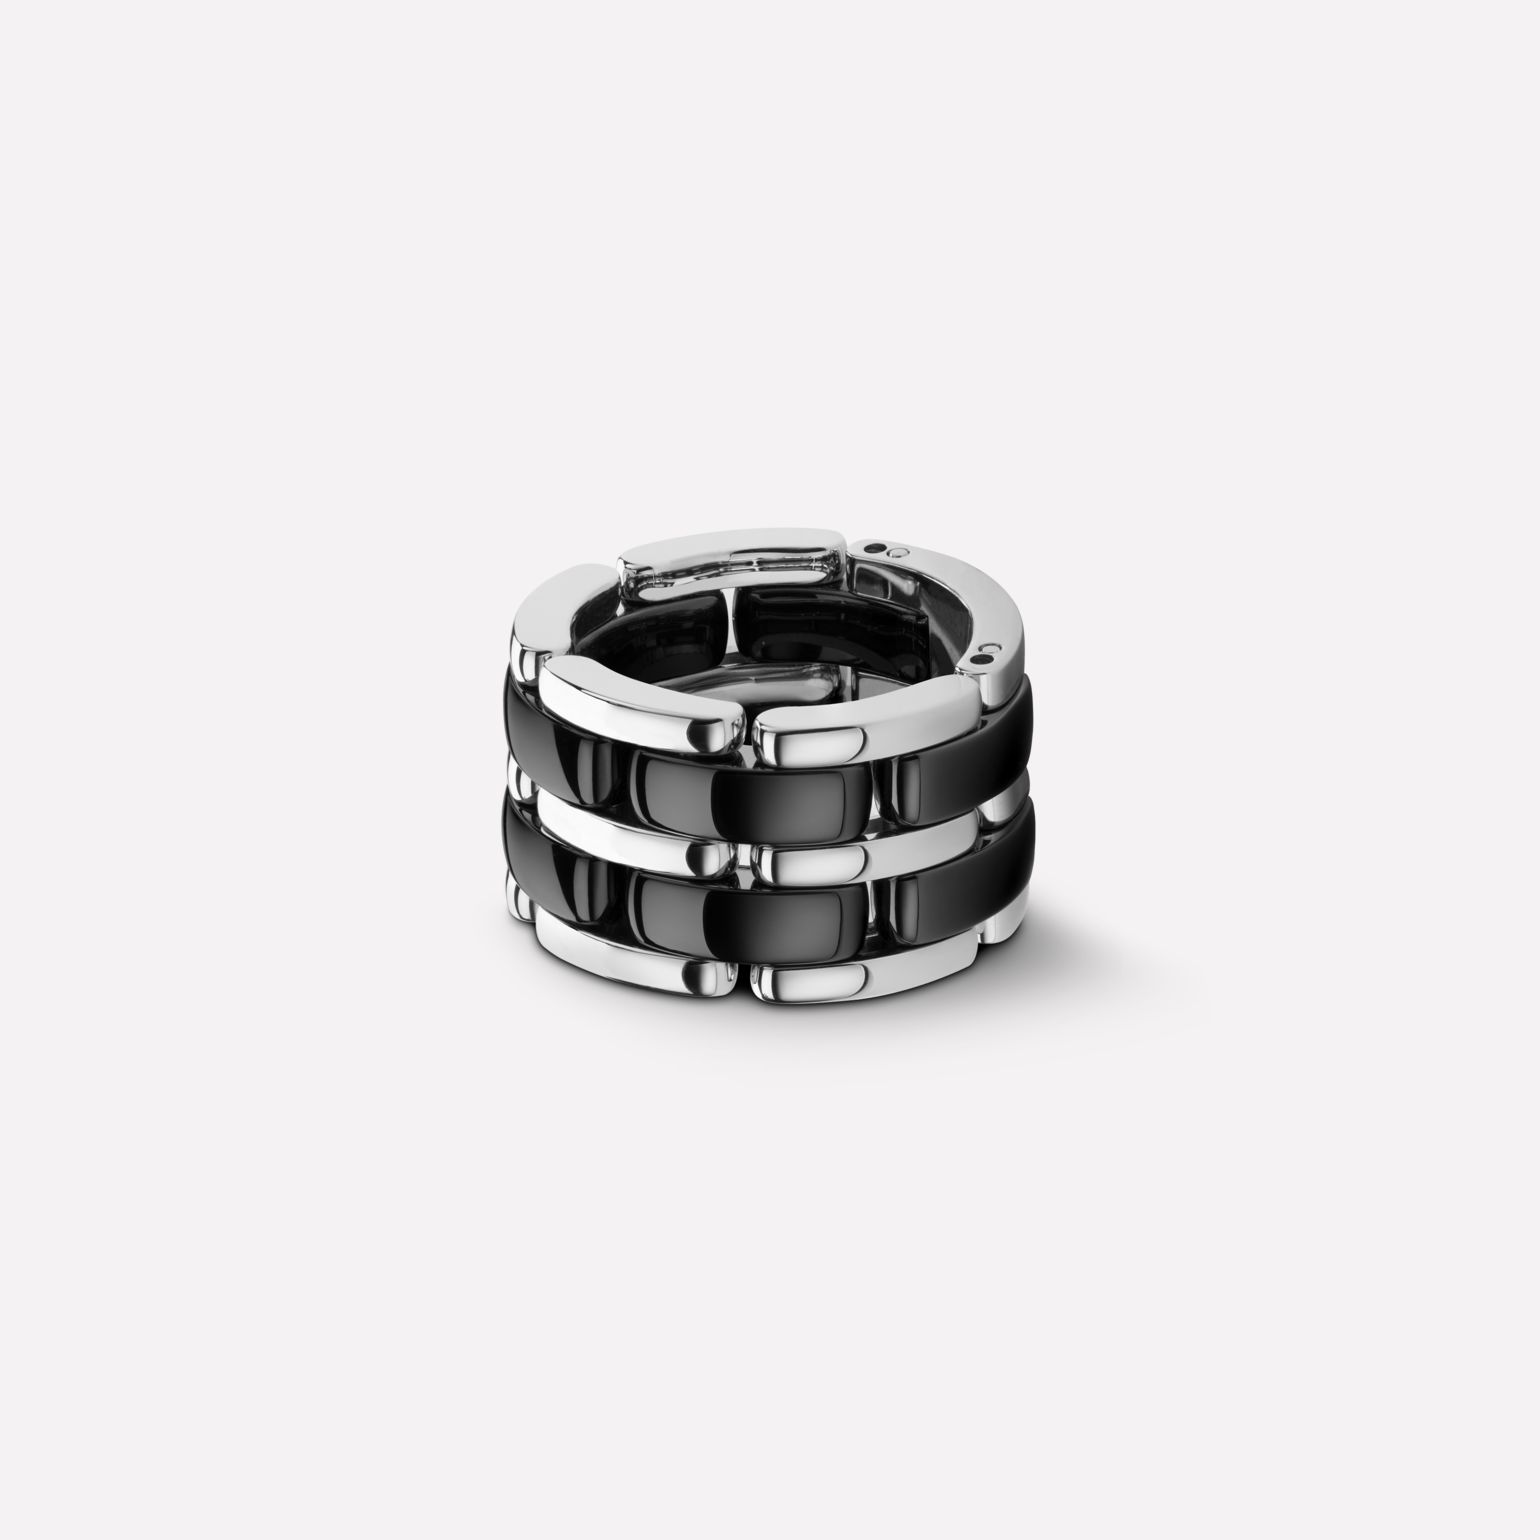 Ultra ring Ultra ring, large version, in black ceramic and 18K white gold